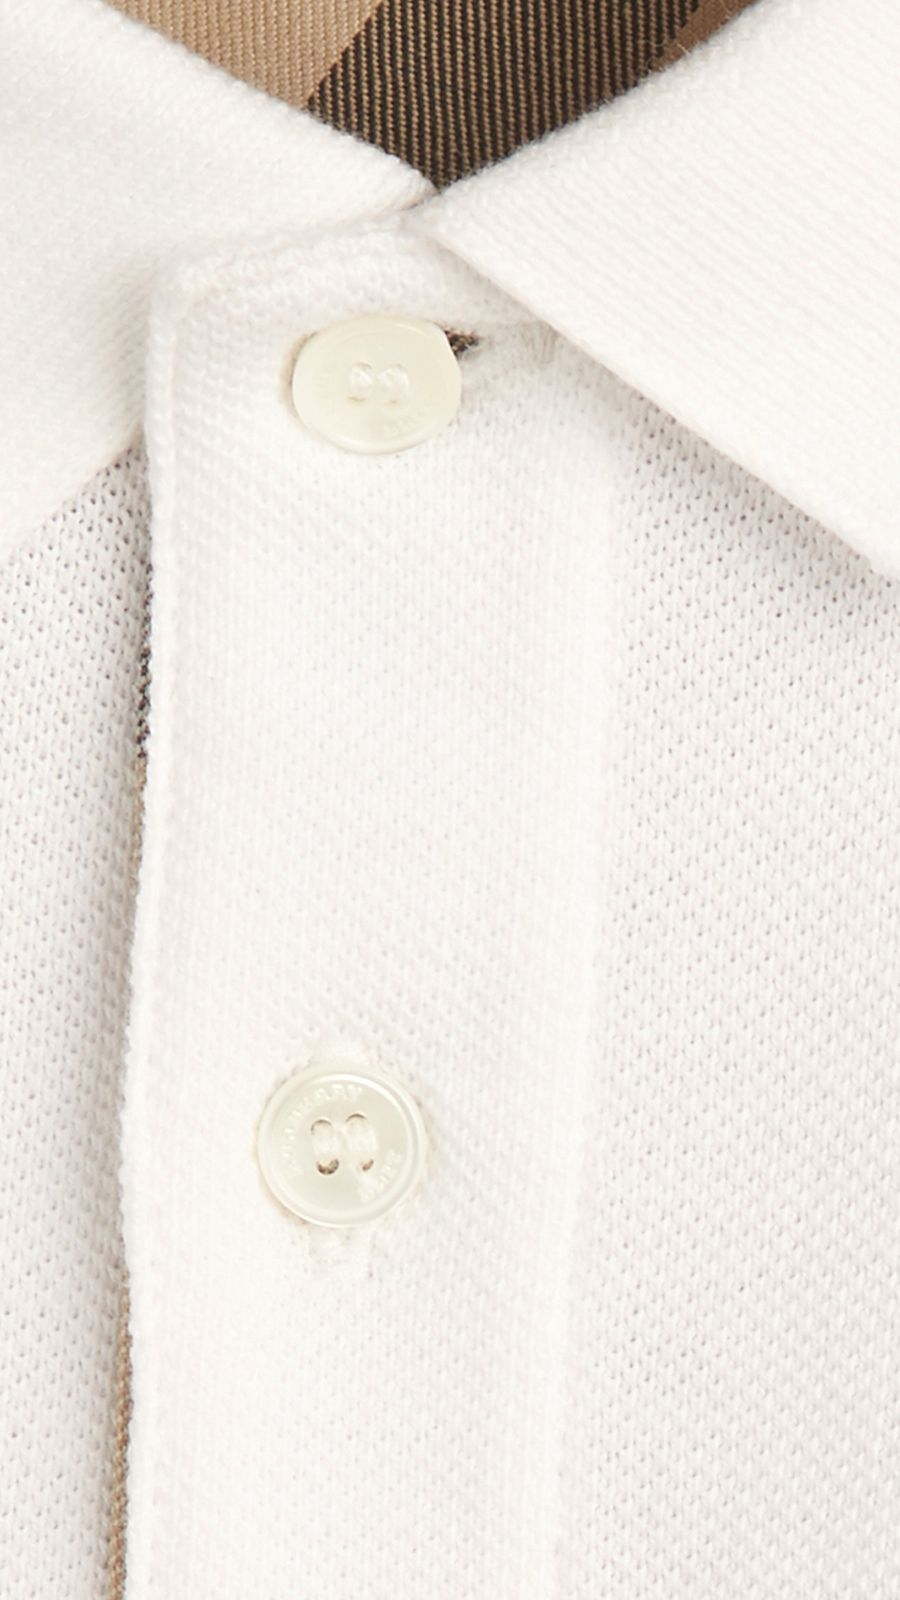 White Check Placket Polo Shirt White - Image 2